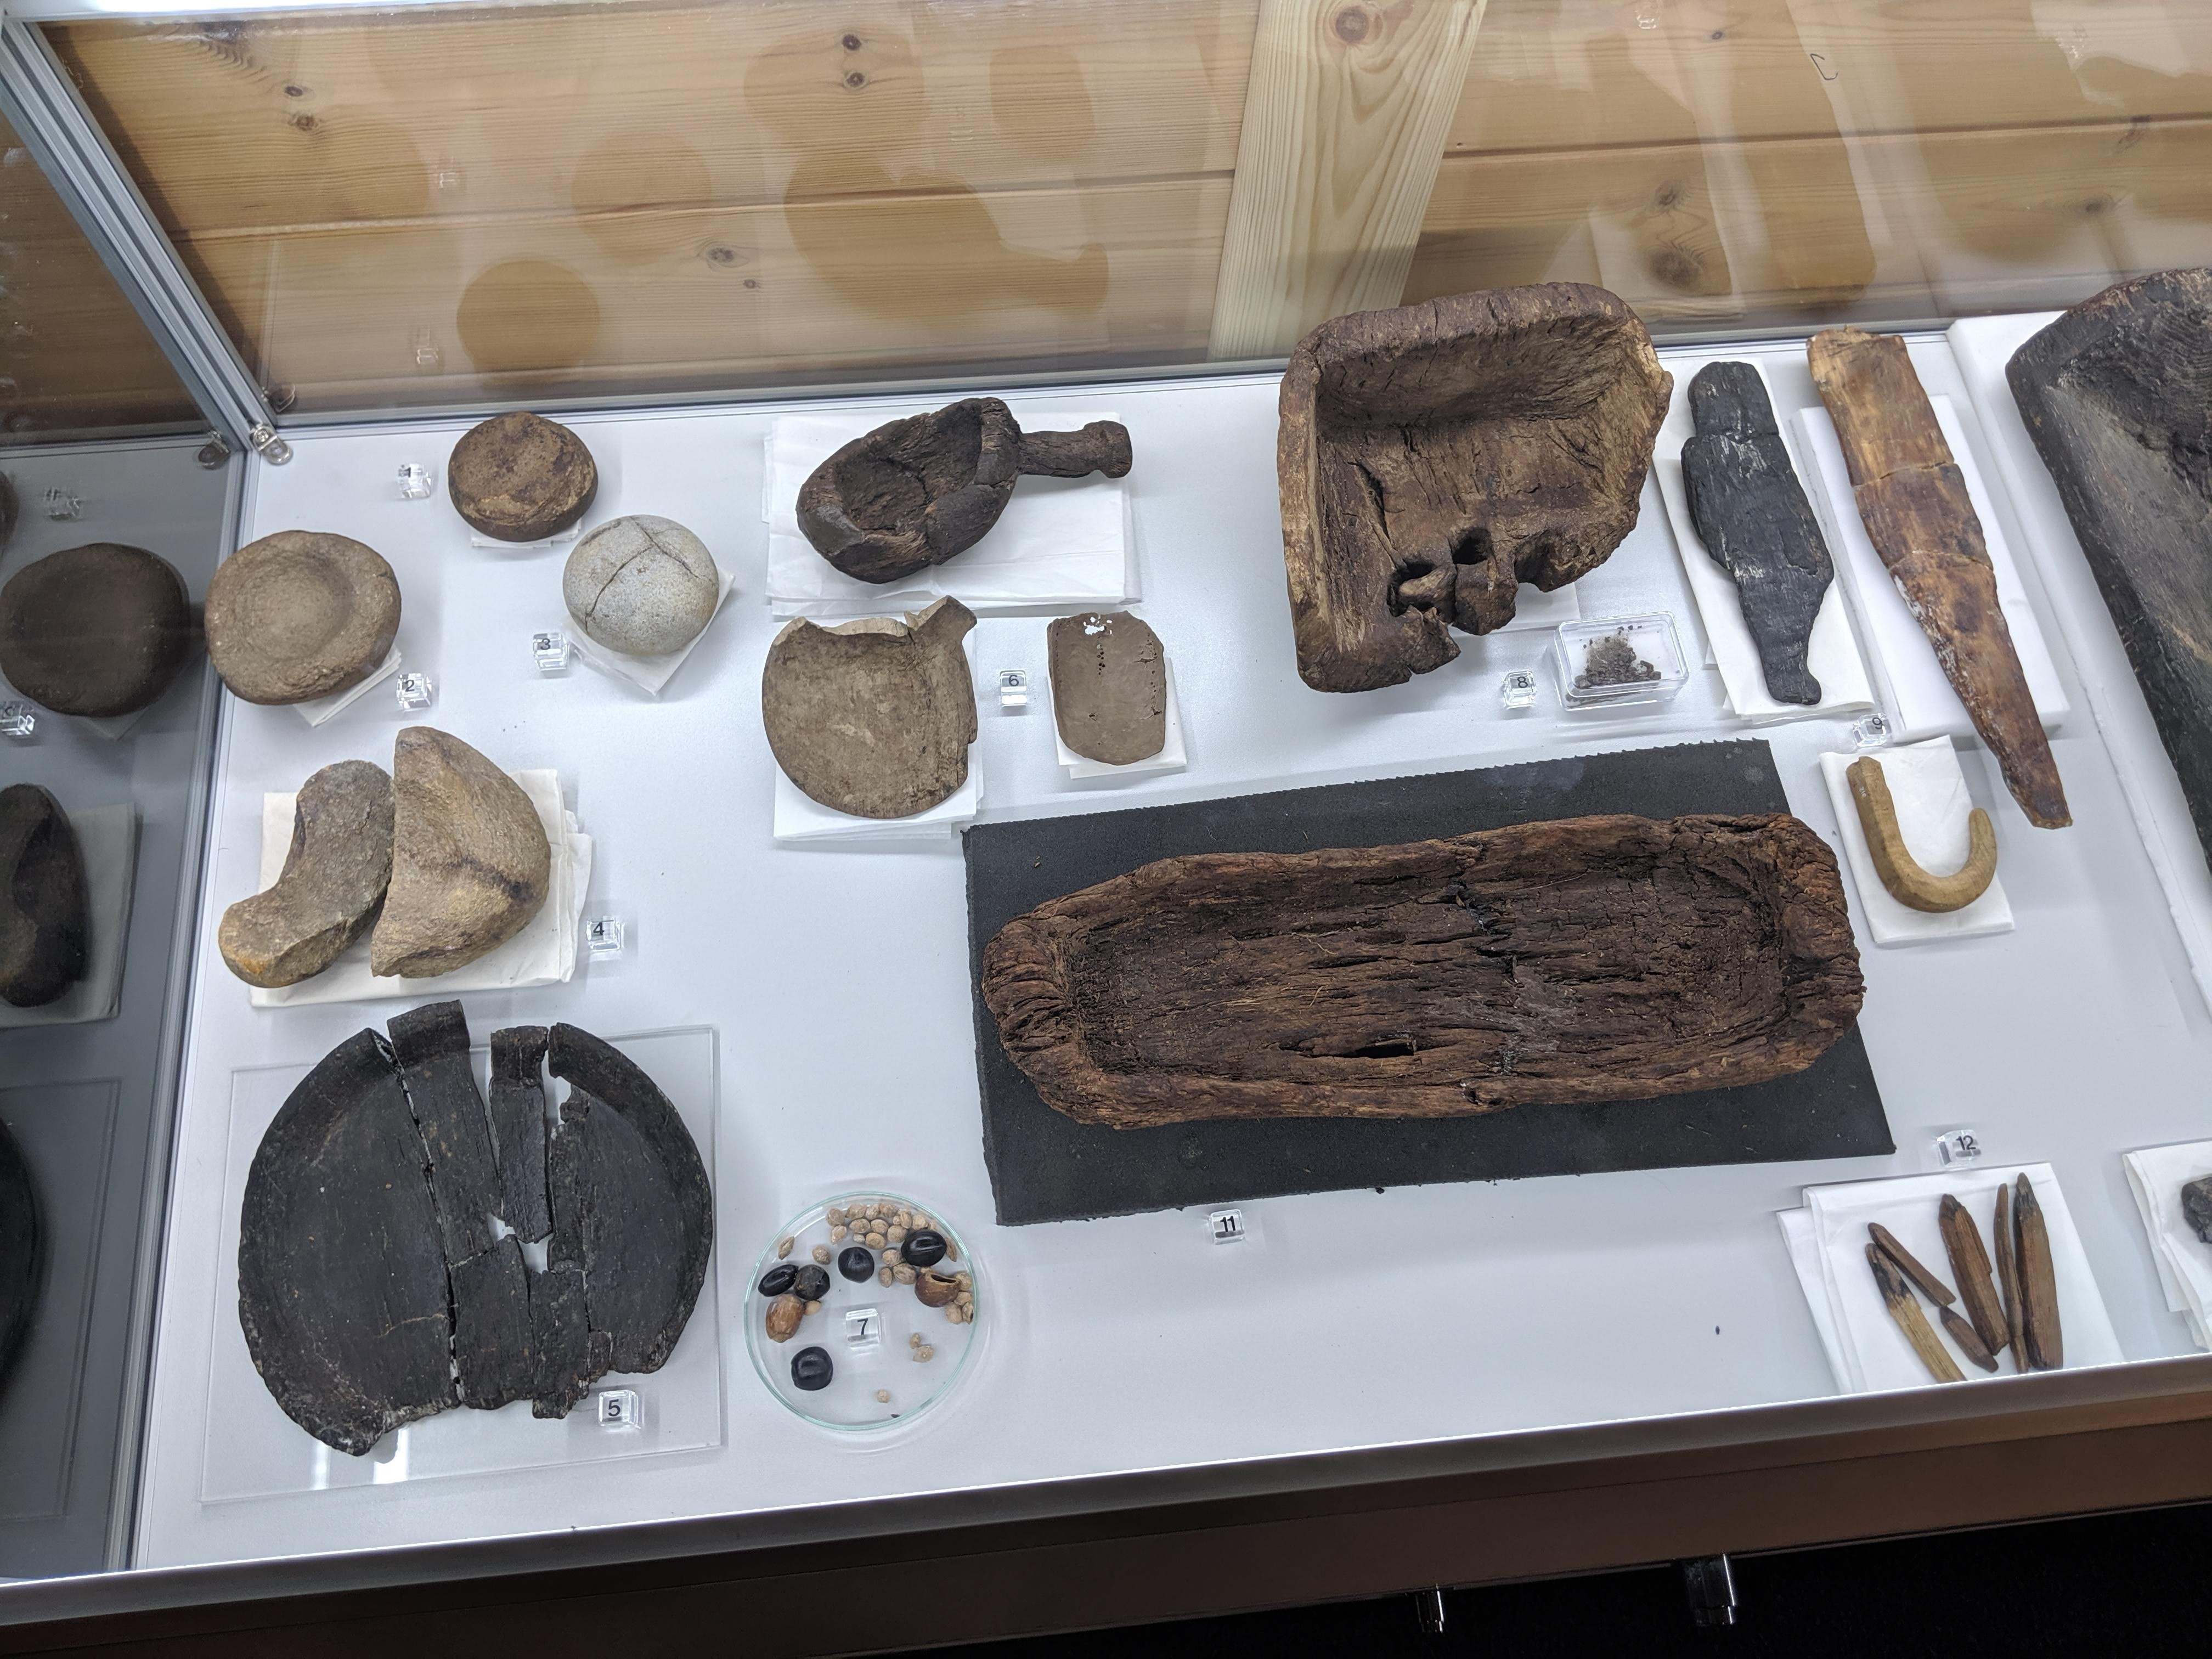 Image of artifacts, including carved wooded ladles, bowls, and other shapes.